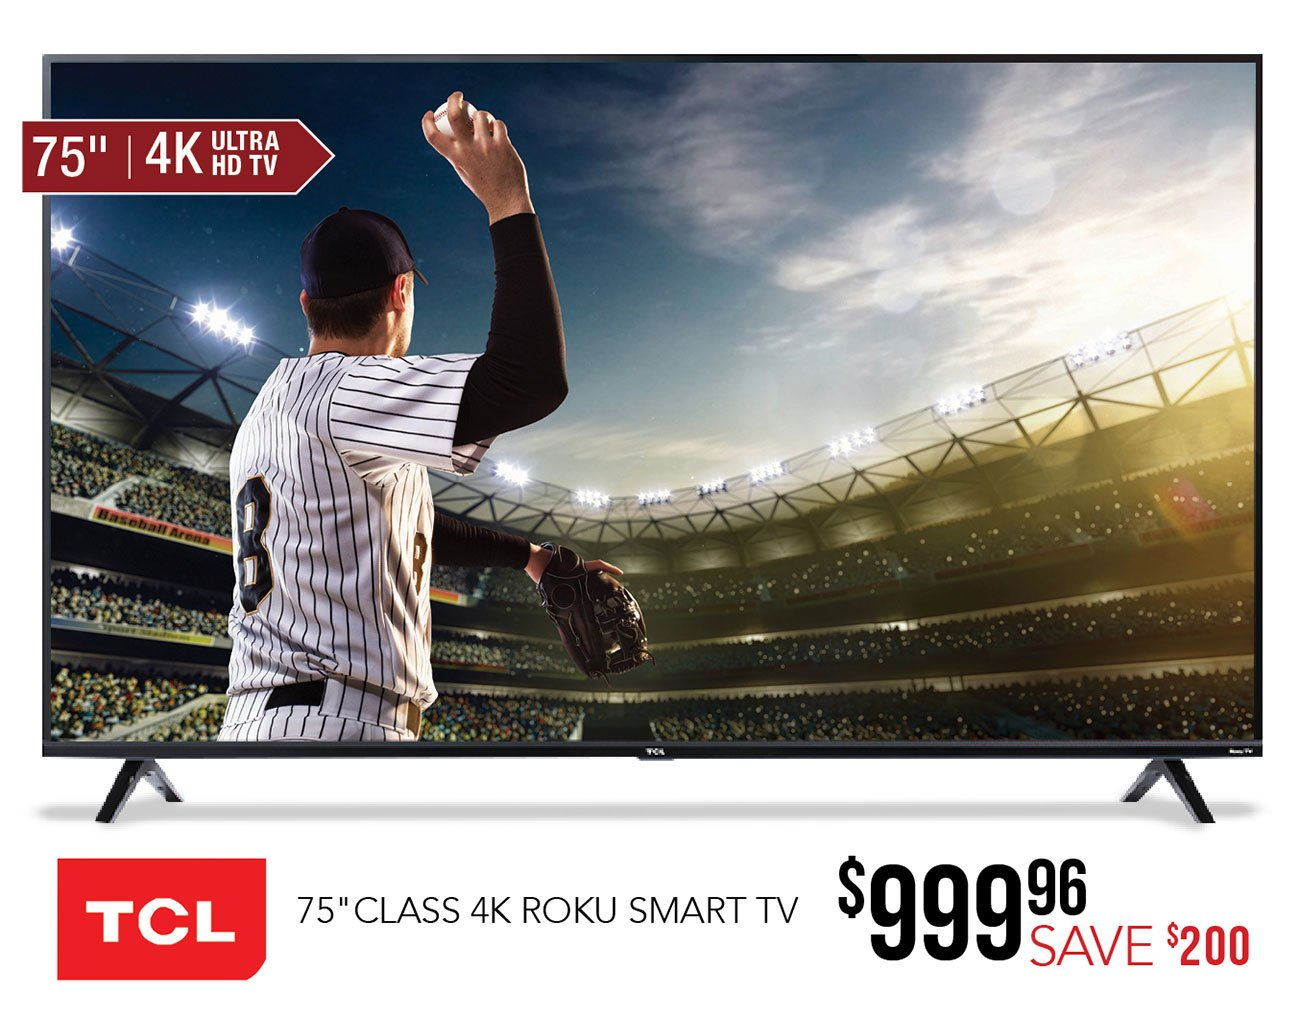 TCL-75-inch-Smart-TV